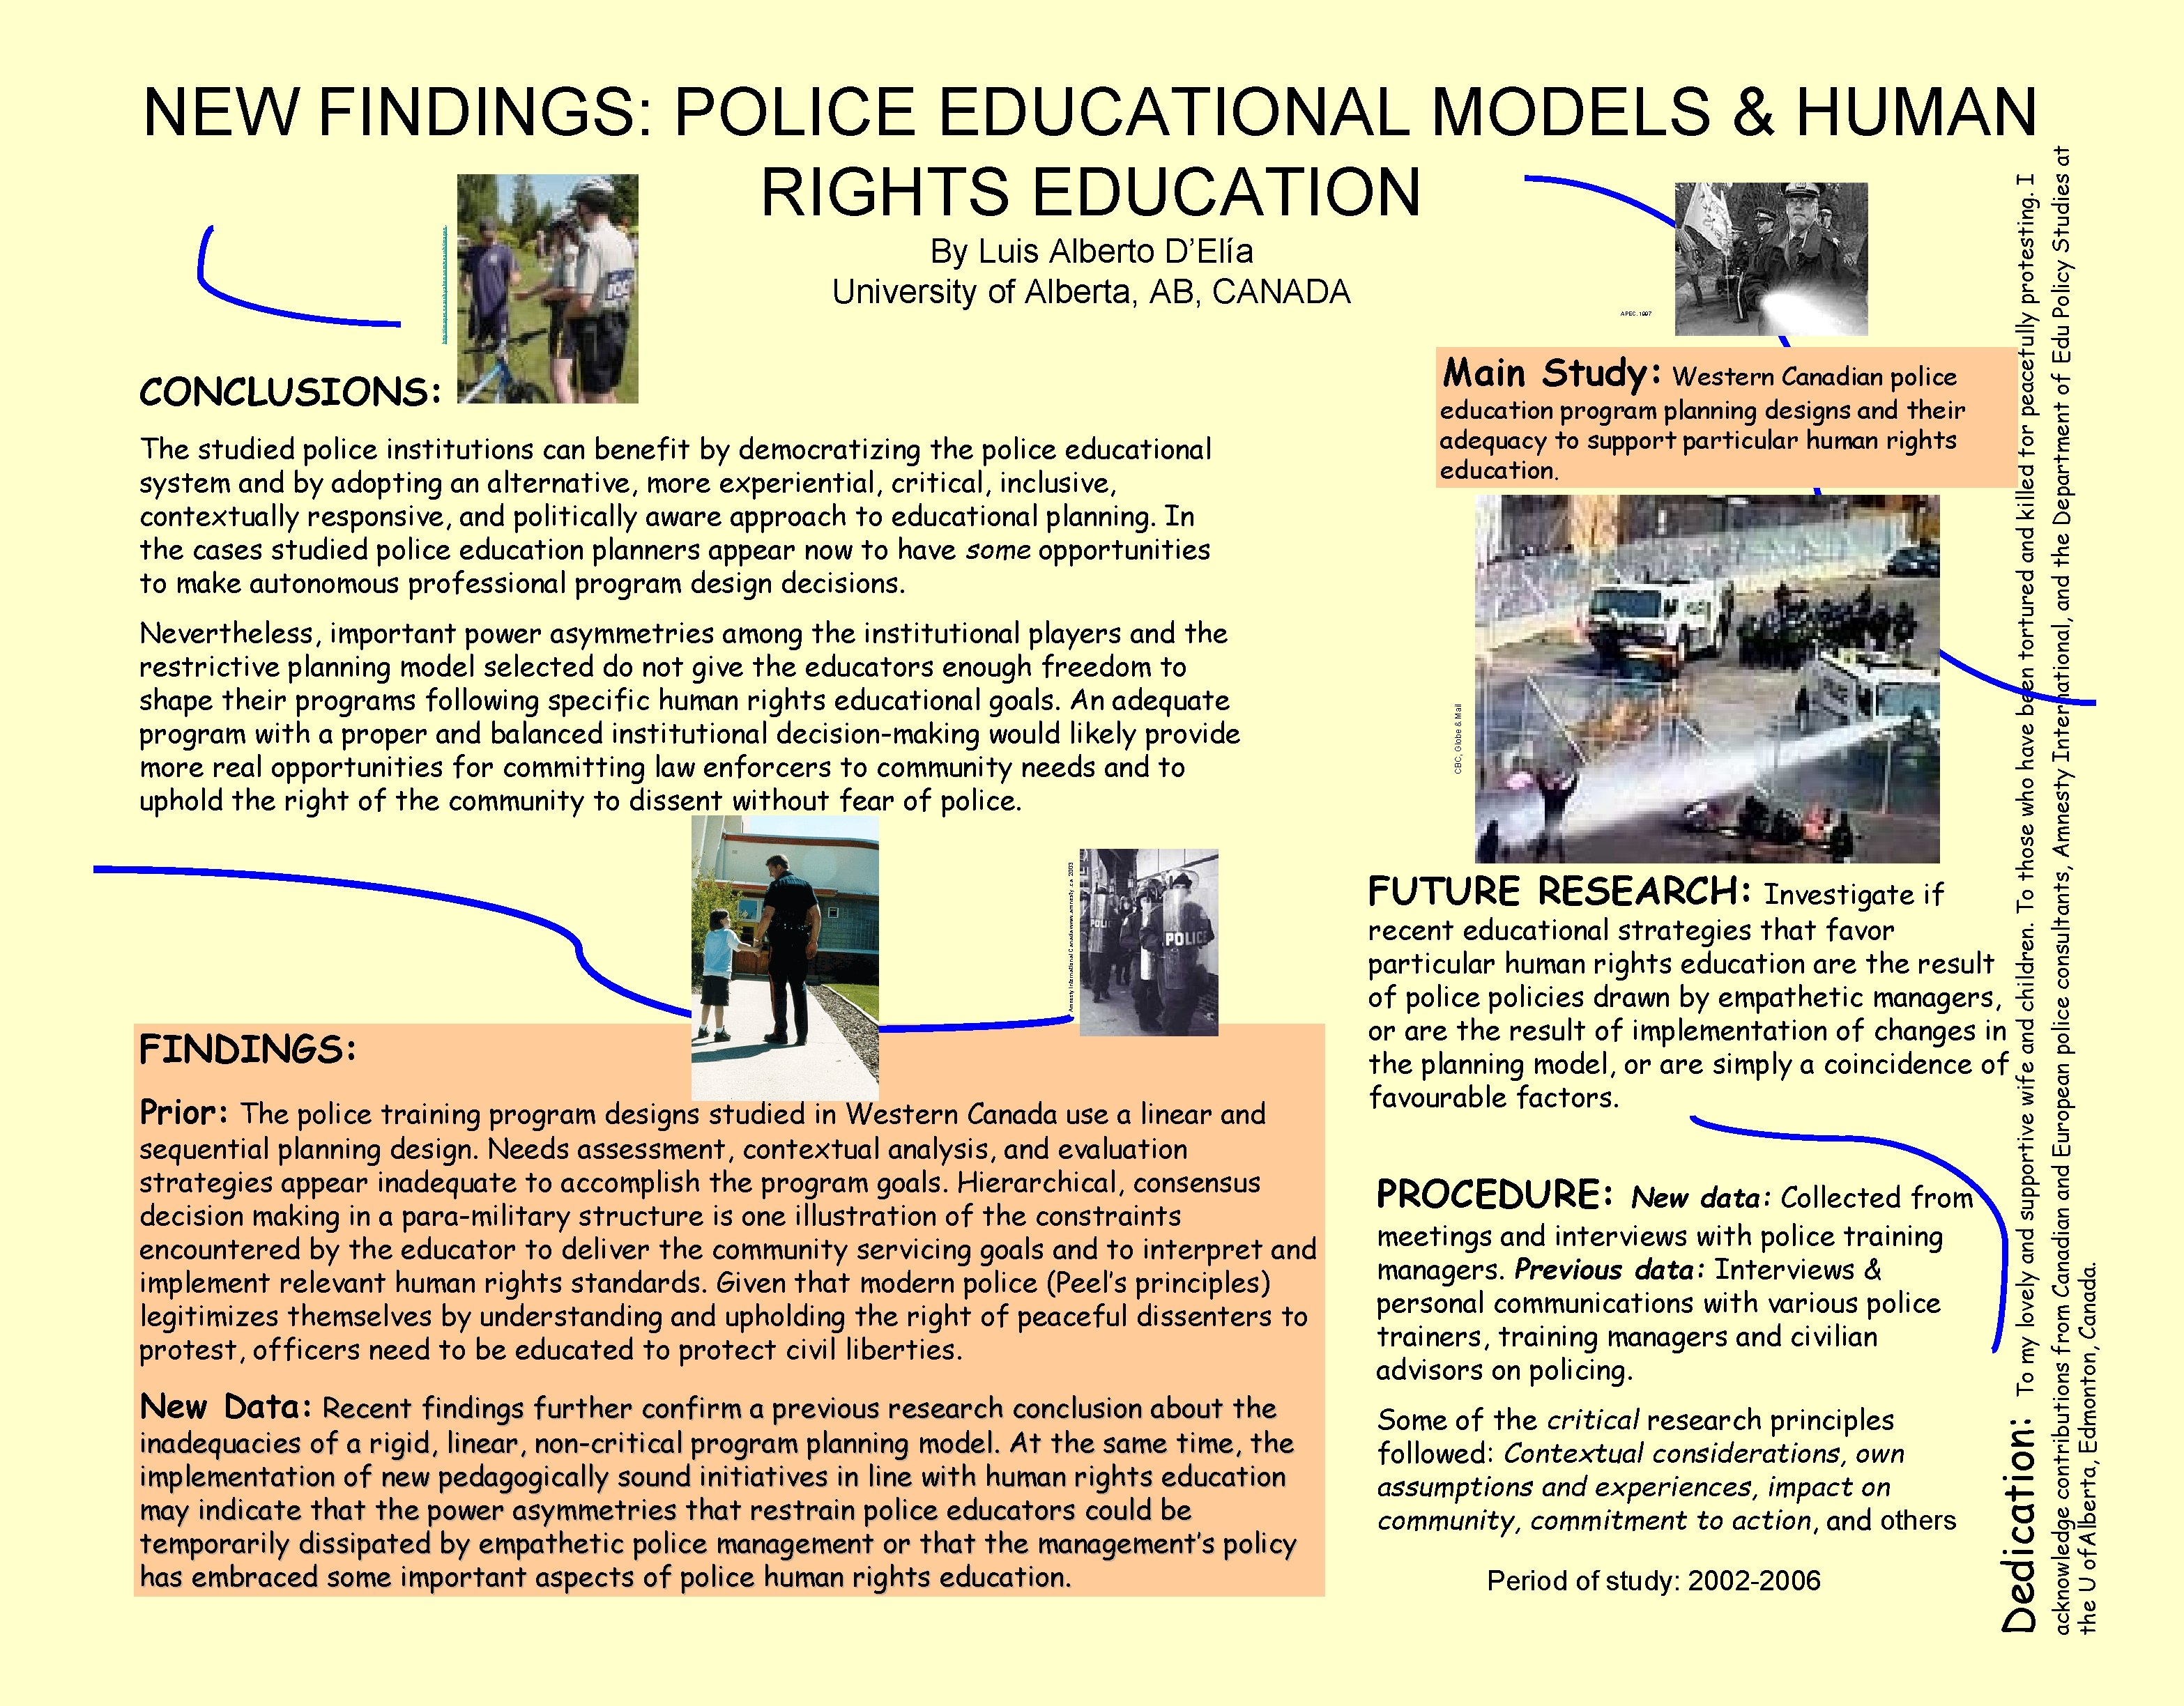 Main Study: Western Canadian police The studied police institutions can benefit by democratizing the